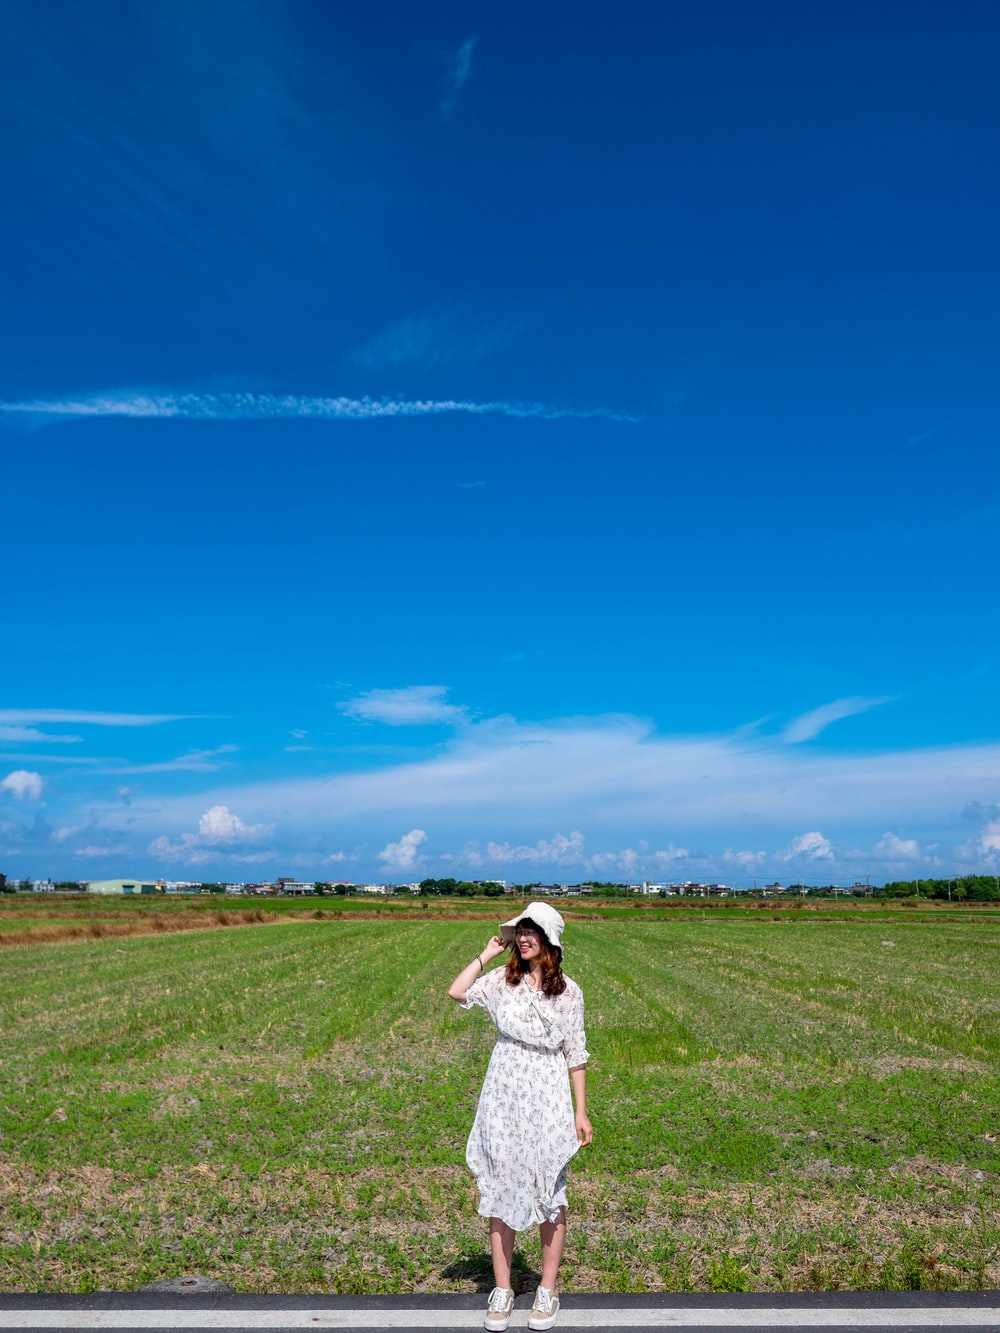 woman in white dress standing on green grass field under blue sky during daytime